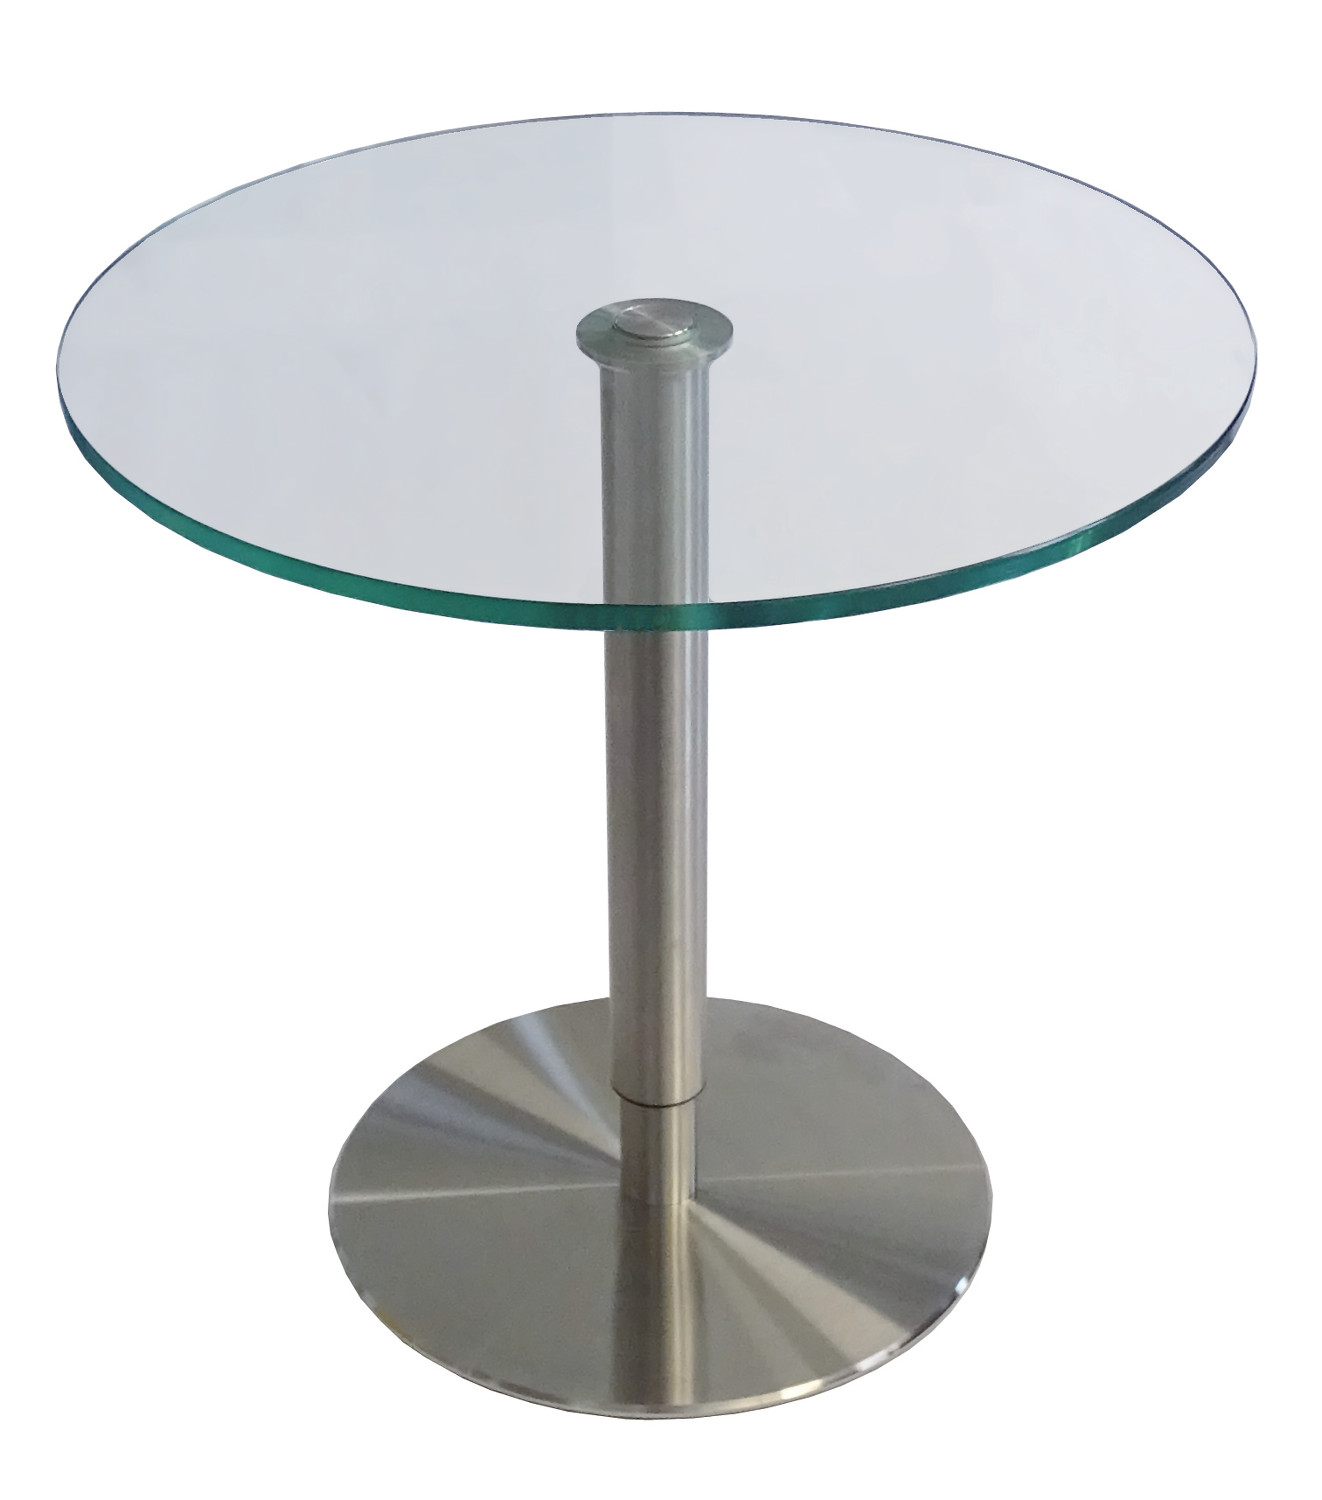 SIDE TABLE WITH PNEUMATIC HEIGHT ADJUSTMENT